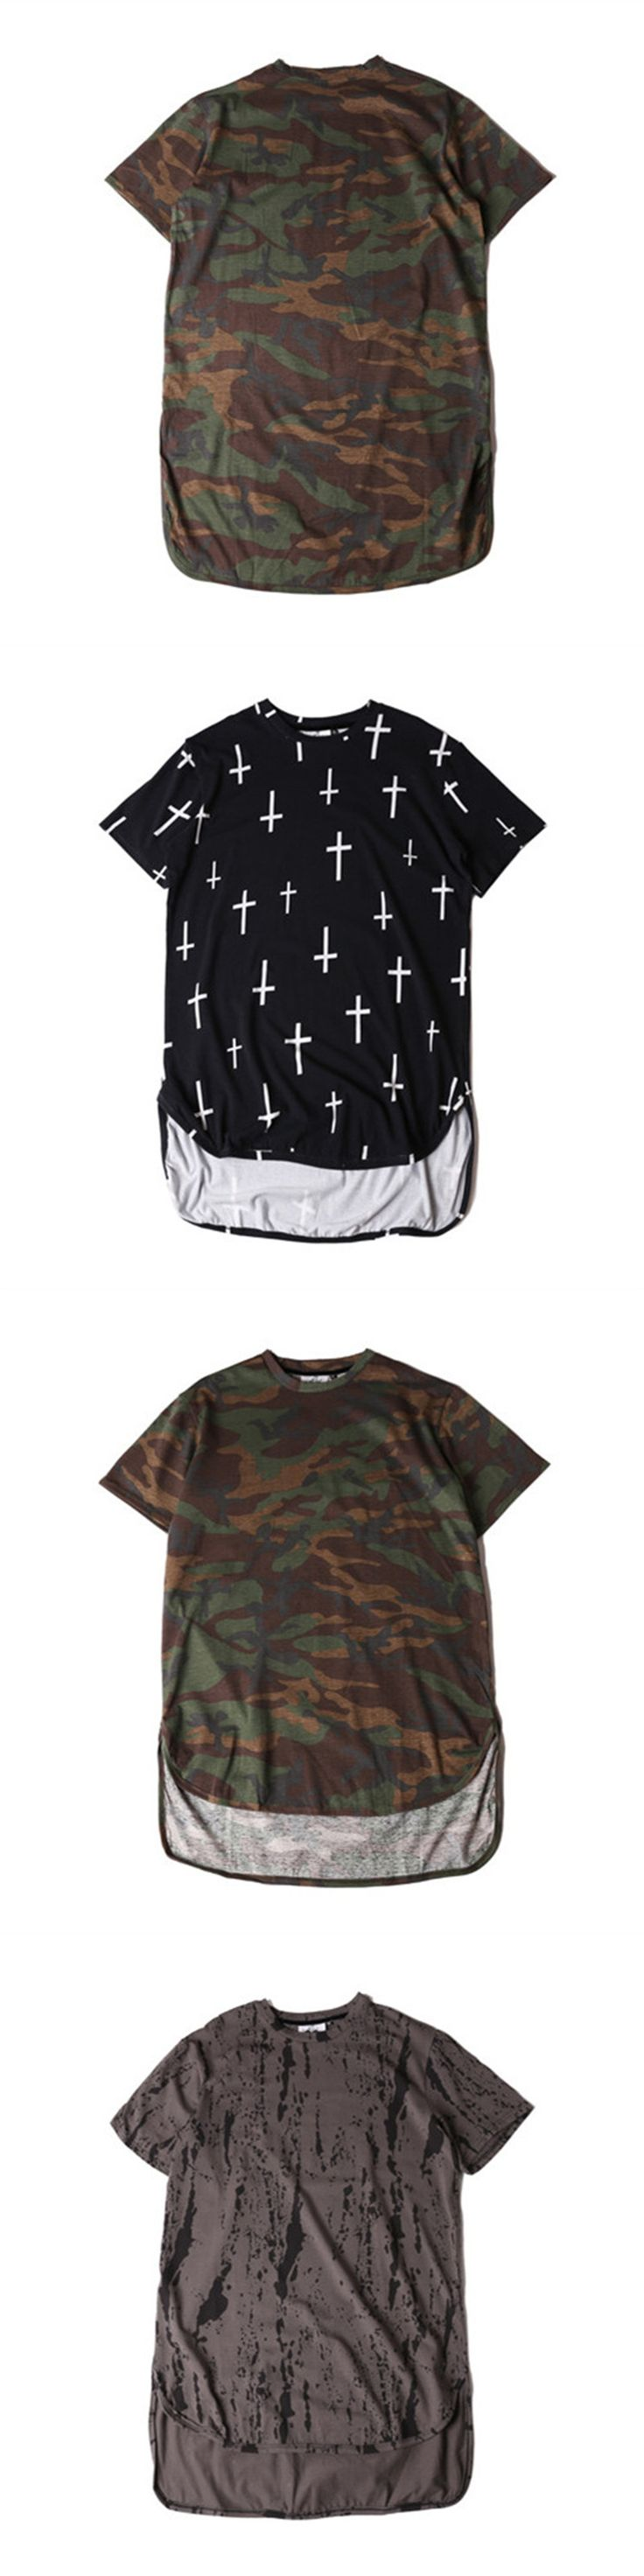 2017 Man Si Tun HipHop Bieber Clothes Street Wear Urban Clothing Men Women Long Sleeve Longline T shirt Swag Clothes Camouflage